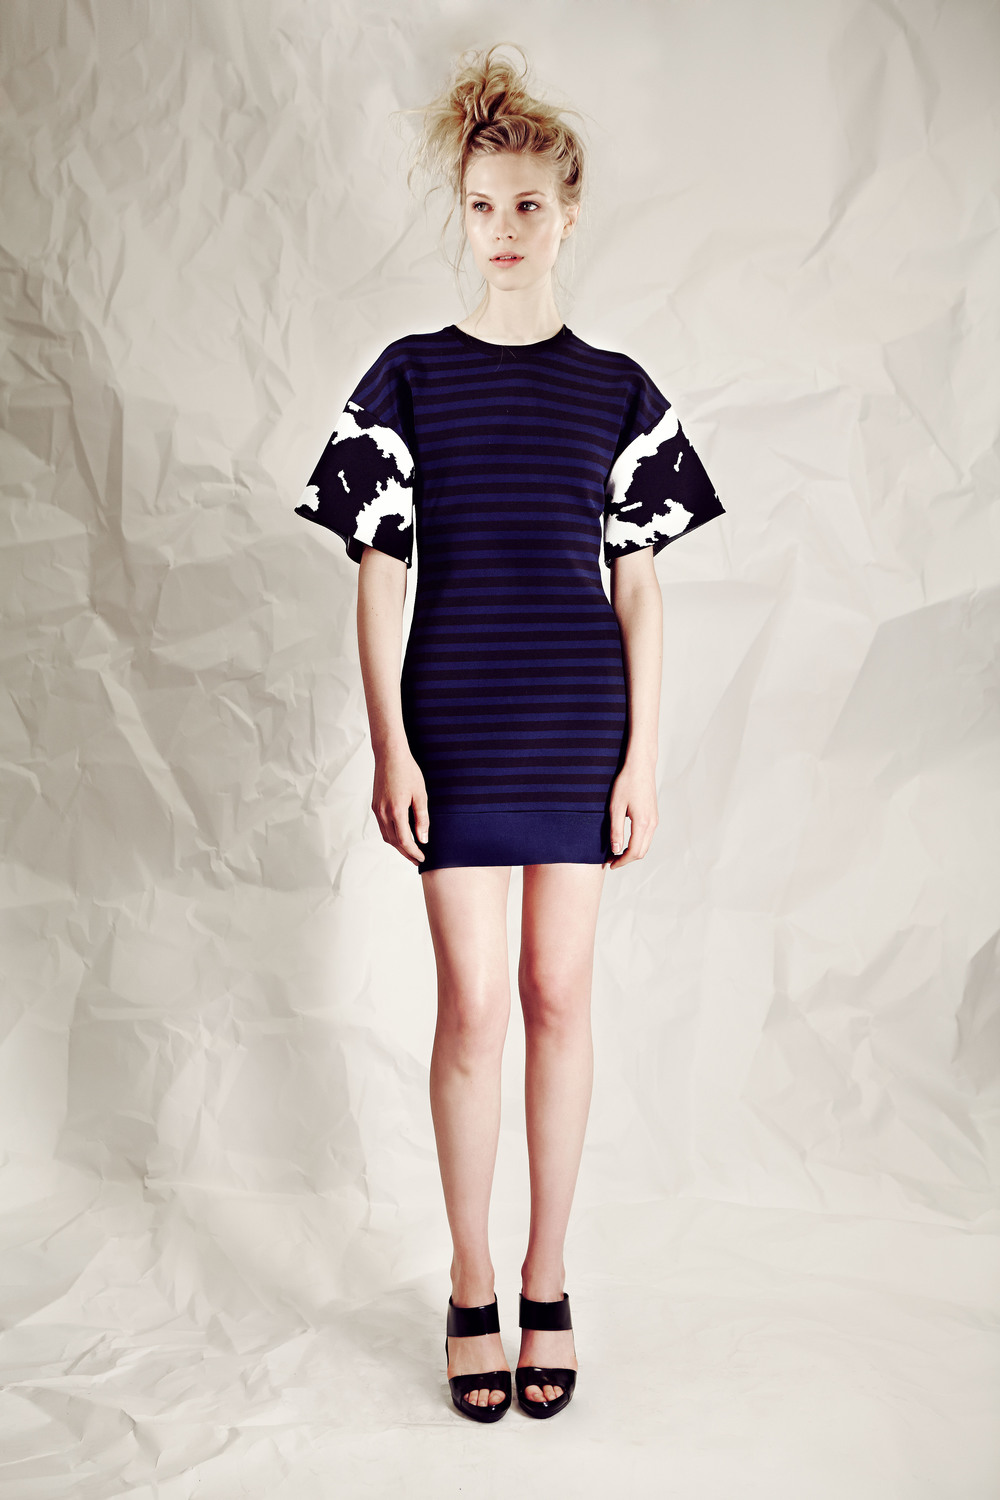 TIMO WEILAND RESORT 15 LOOK 10.jpg